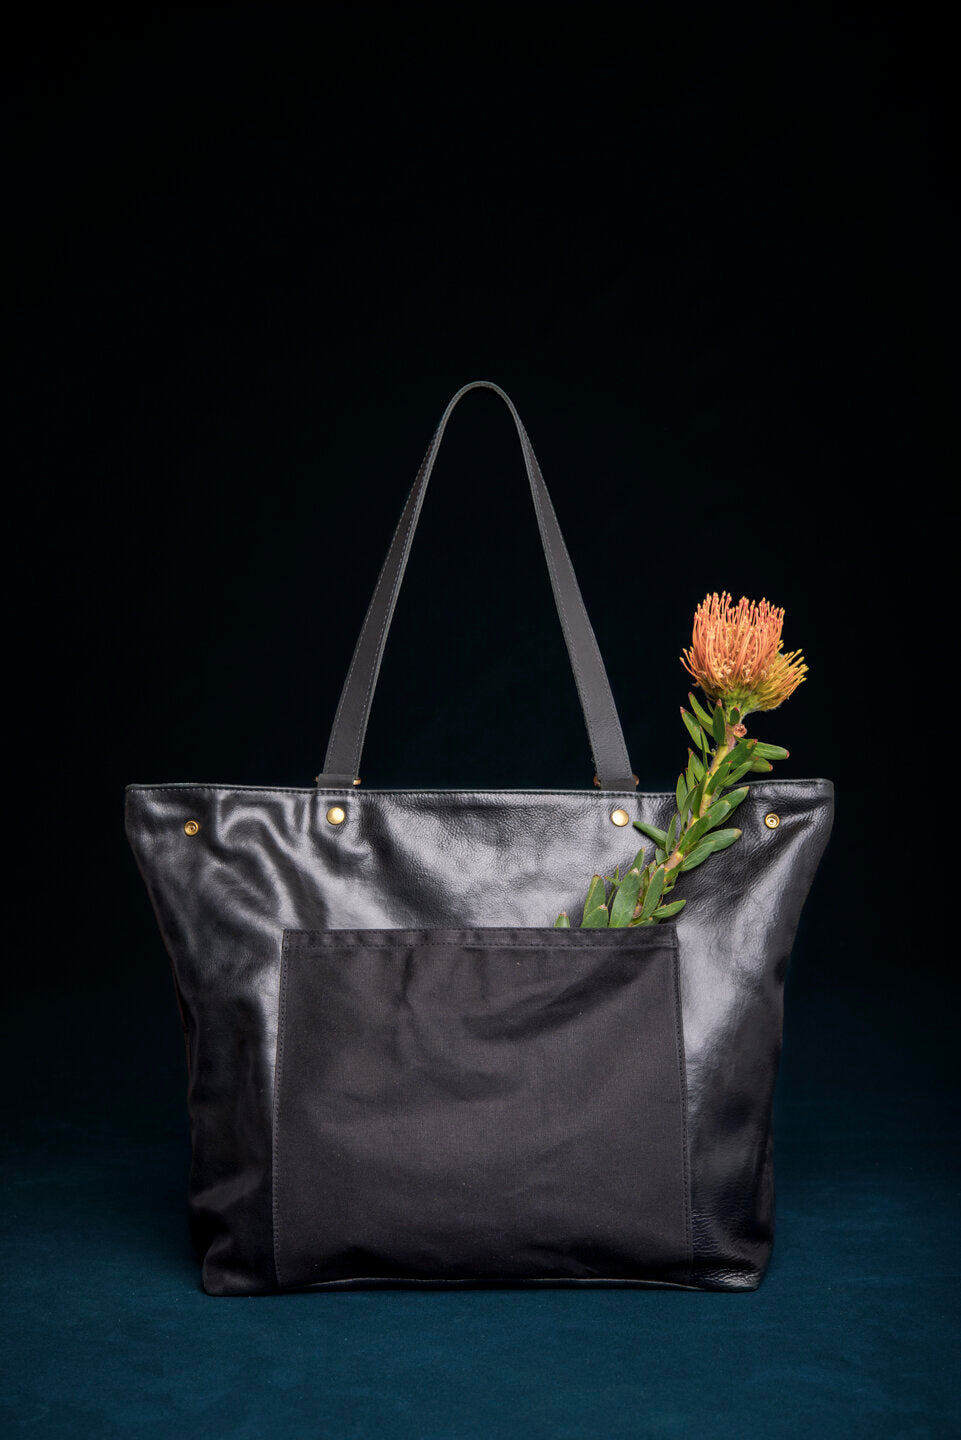 MASSON leather and waxed canvas tote bag convertible to back pack